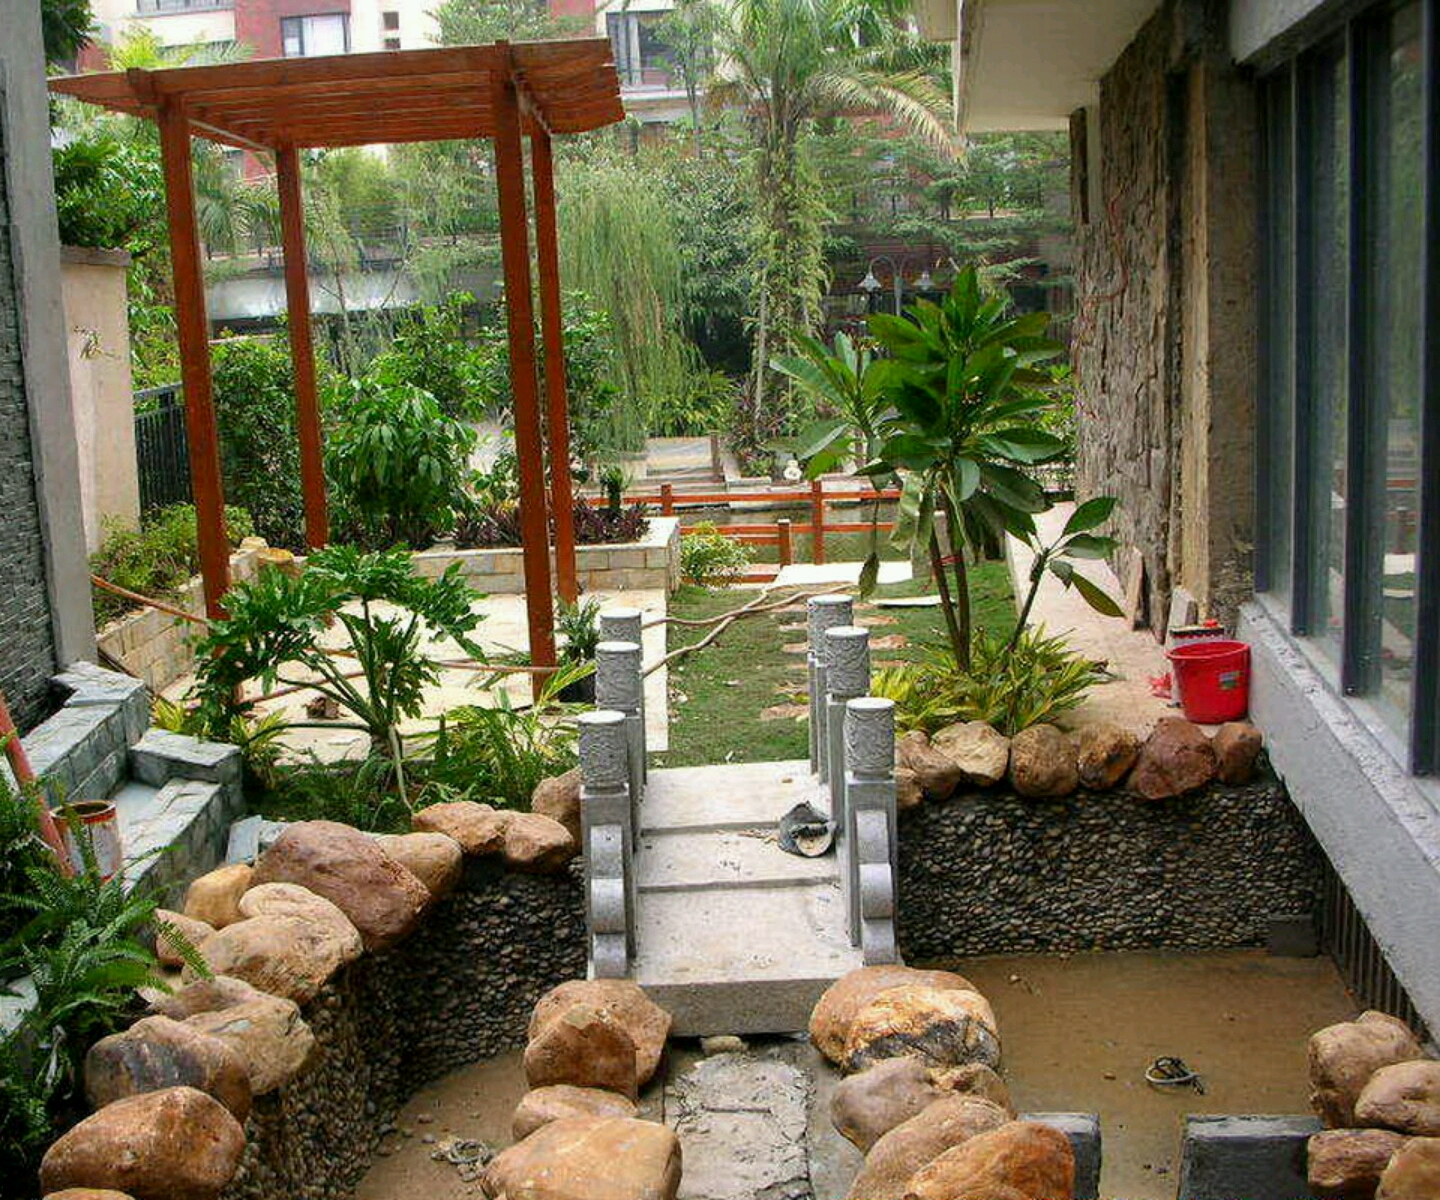 New home designs latest beautiful home gardens designs ideas Small home garden design ideas